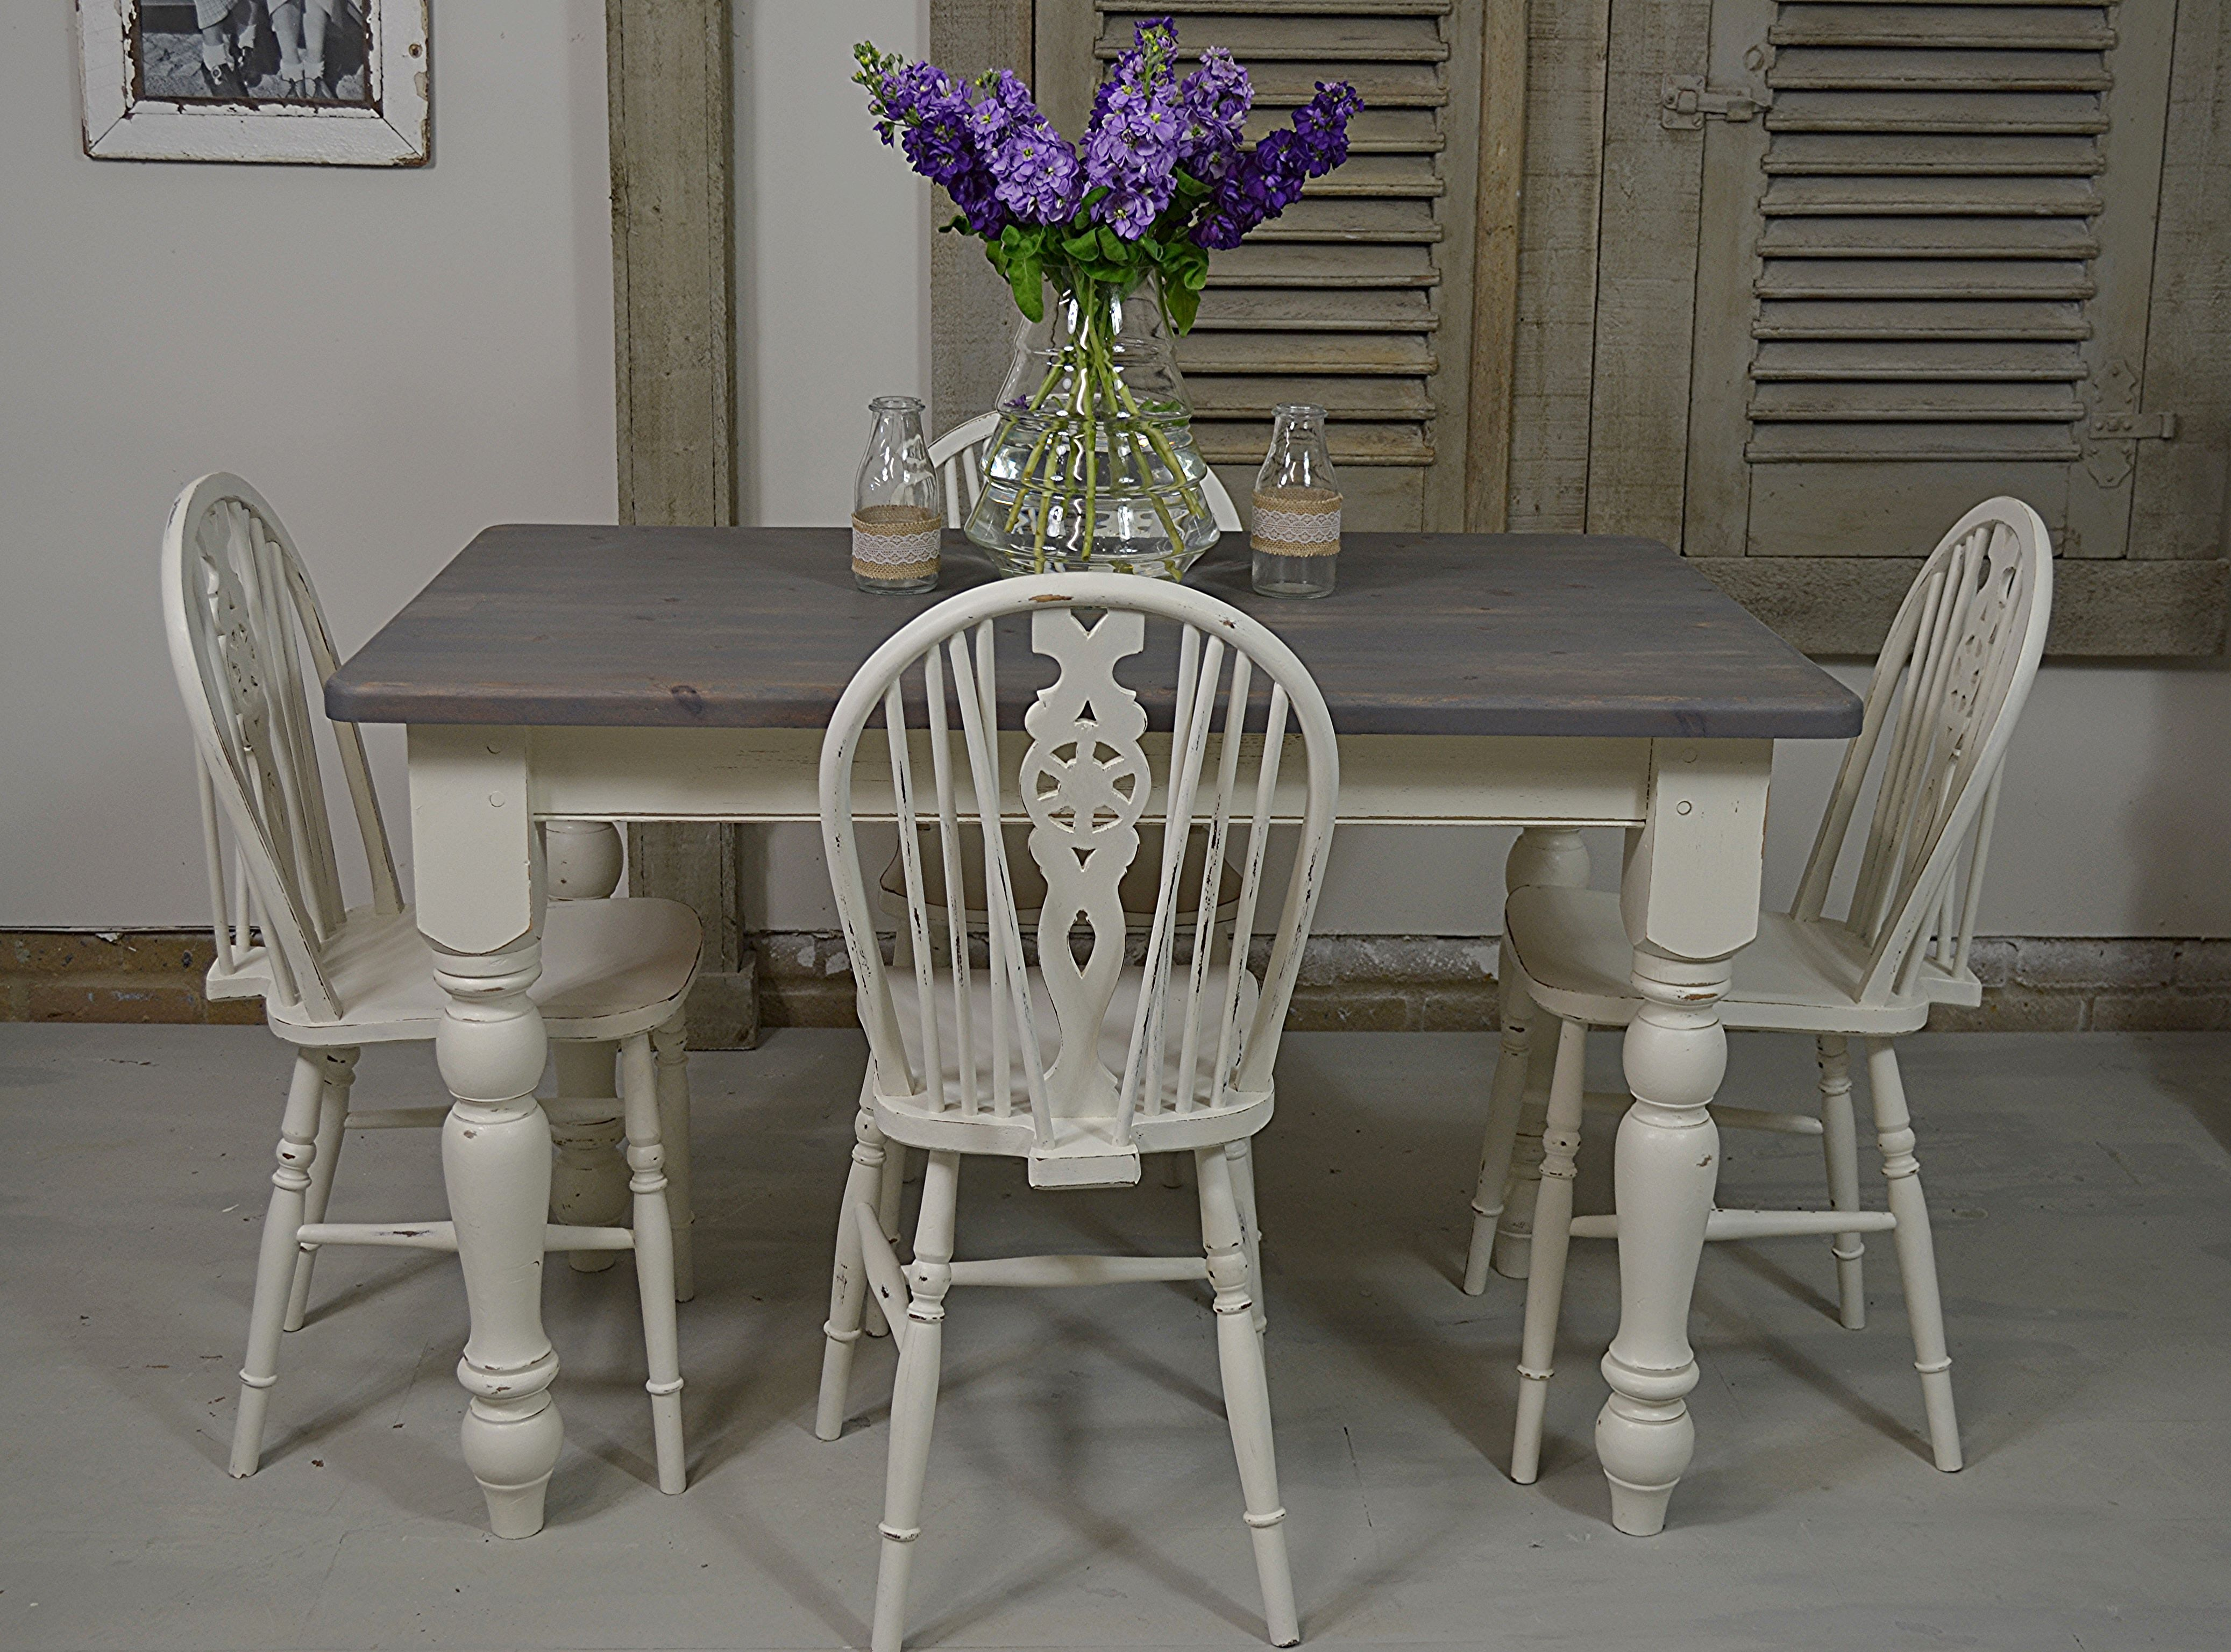 Farmhouse style in abundance with this country